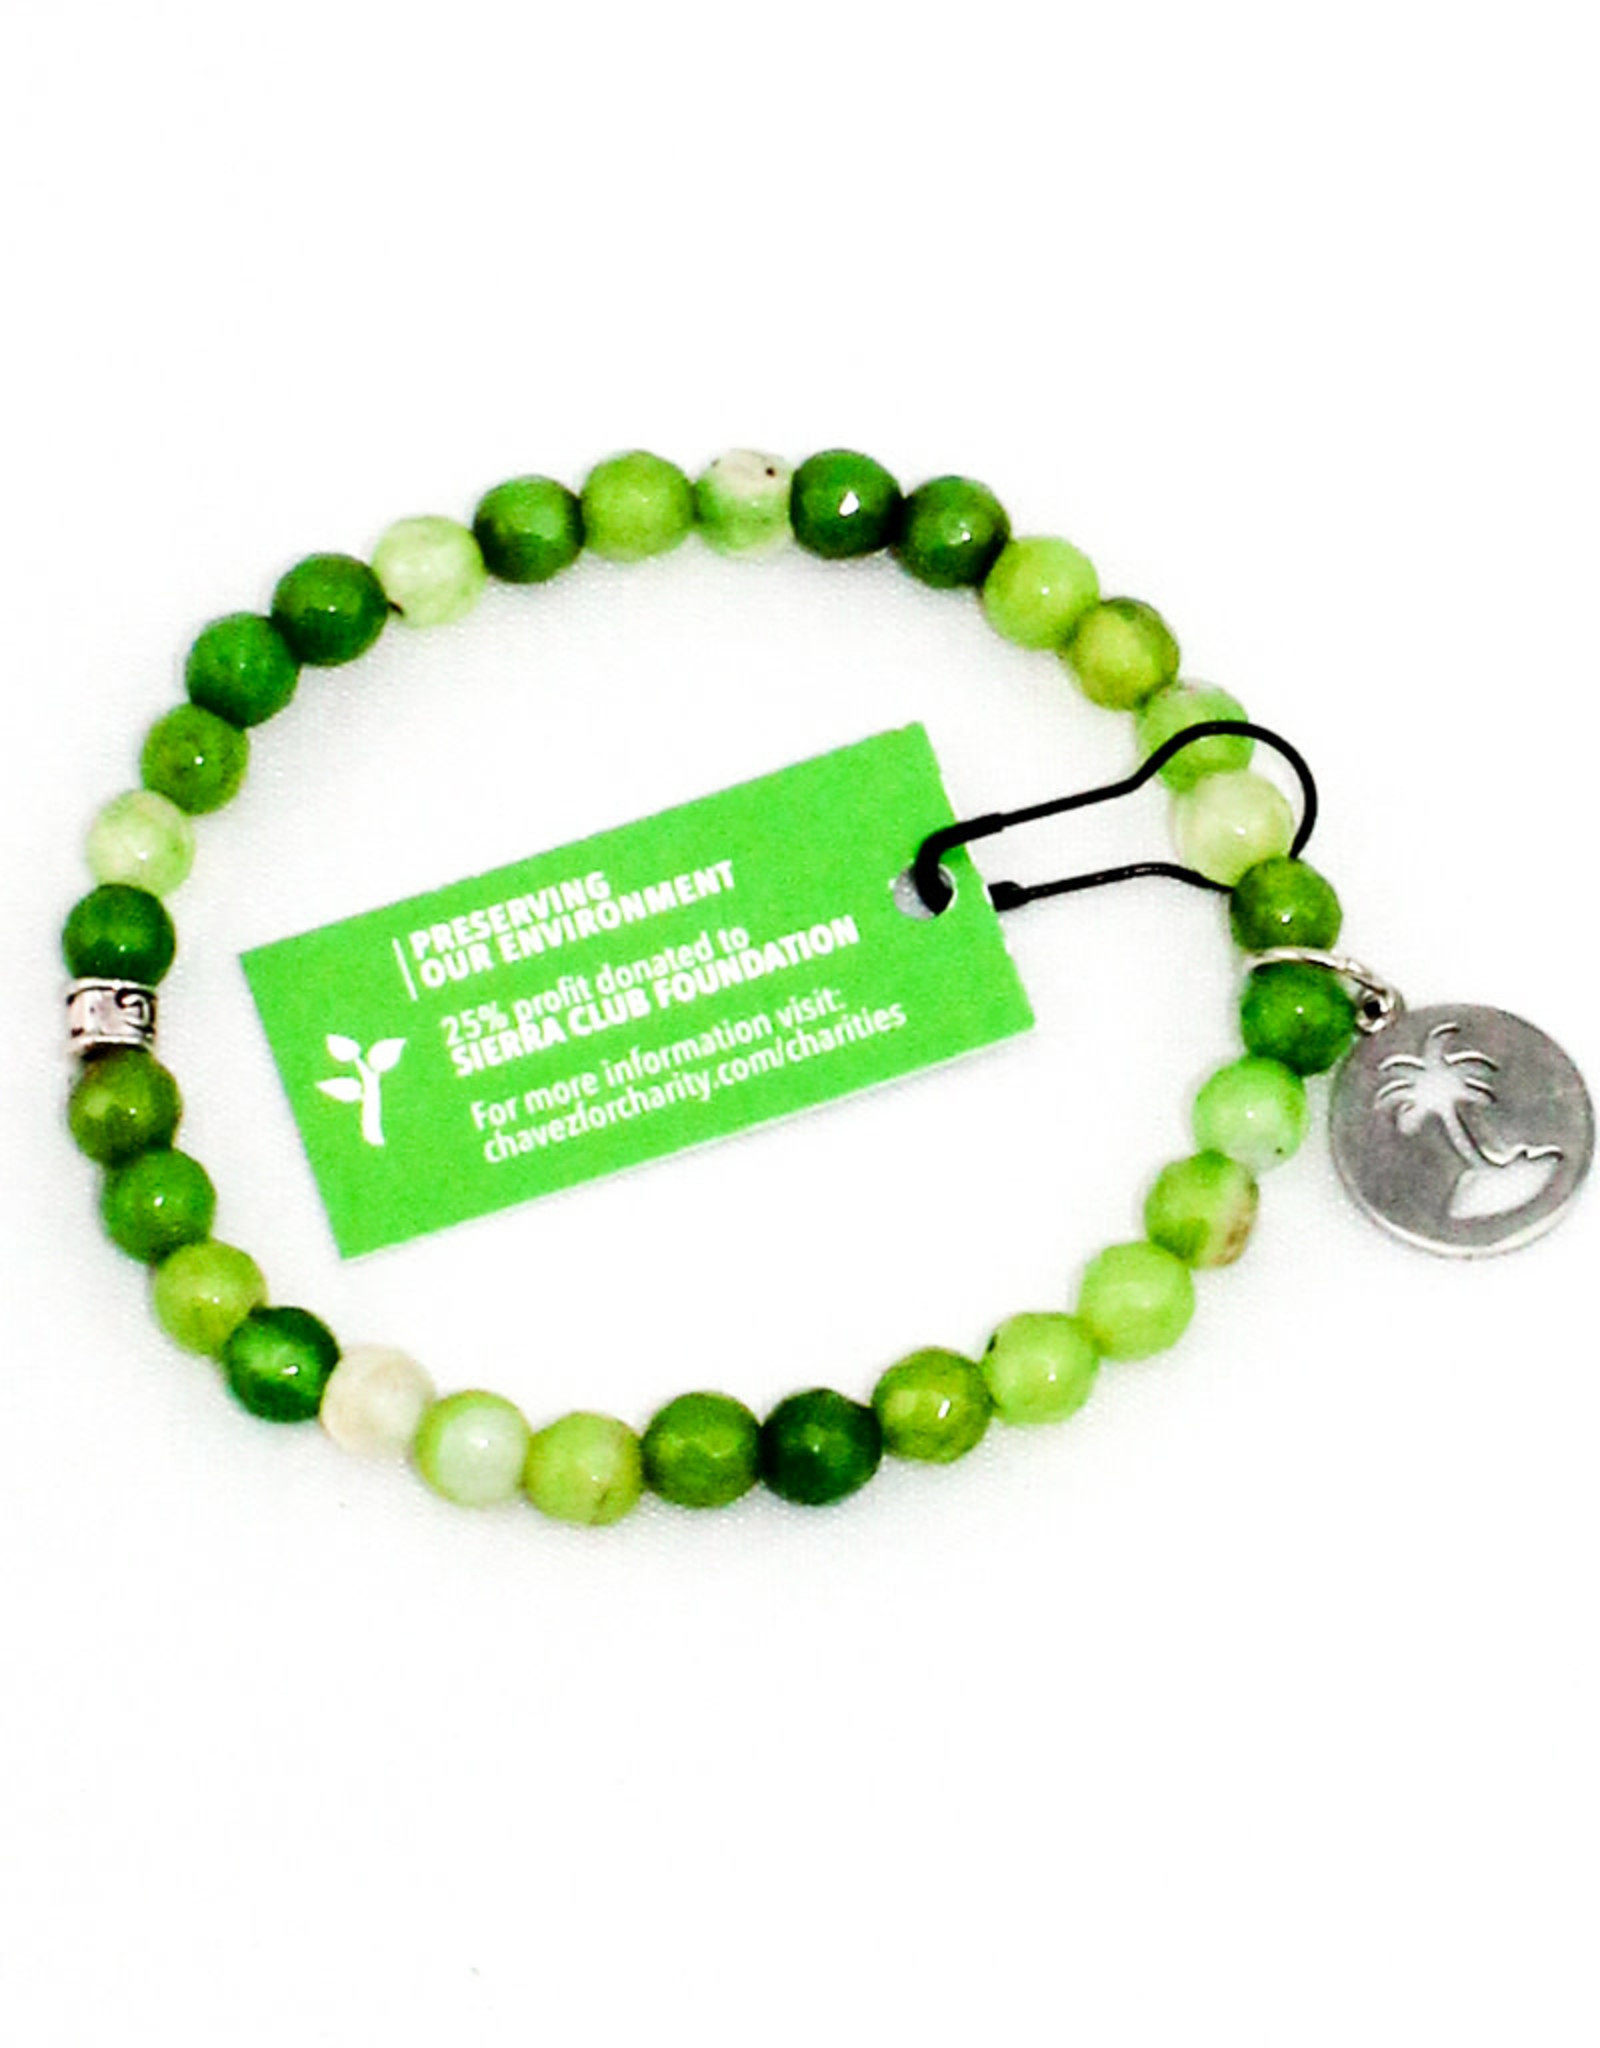 Chavez for Charity Shell Yea Bracelet